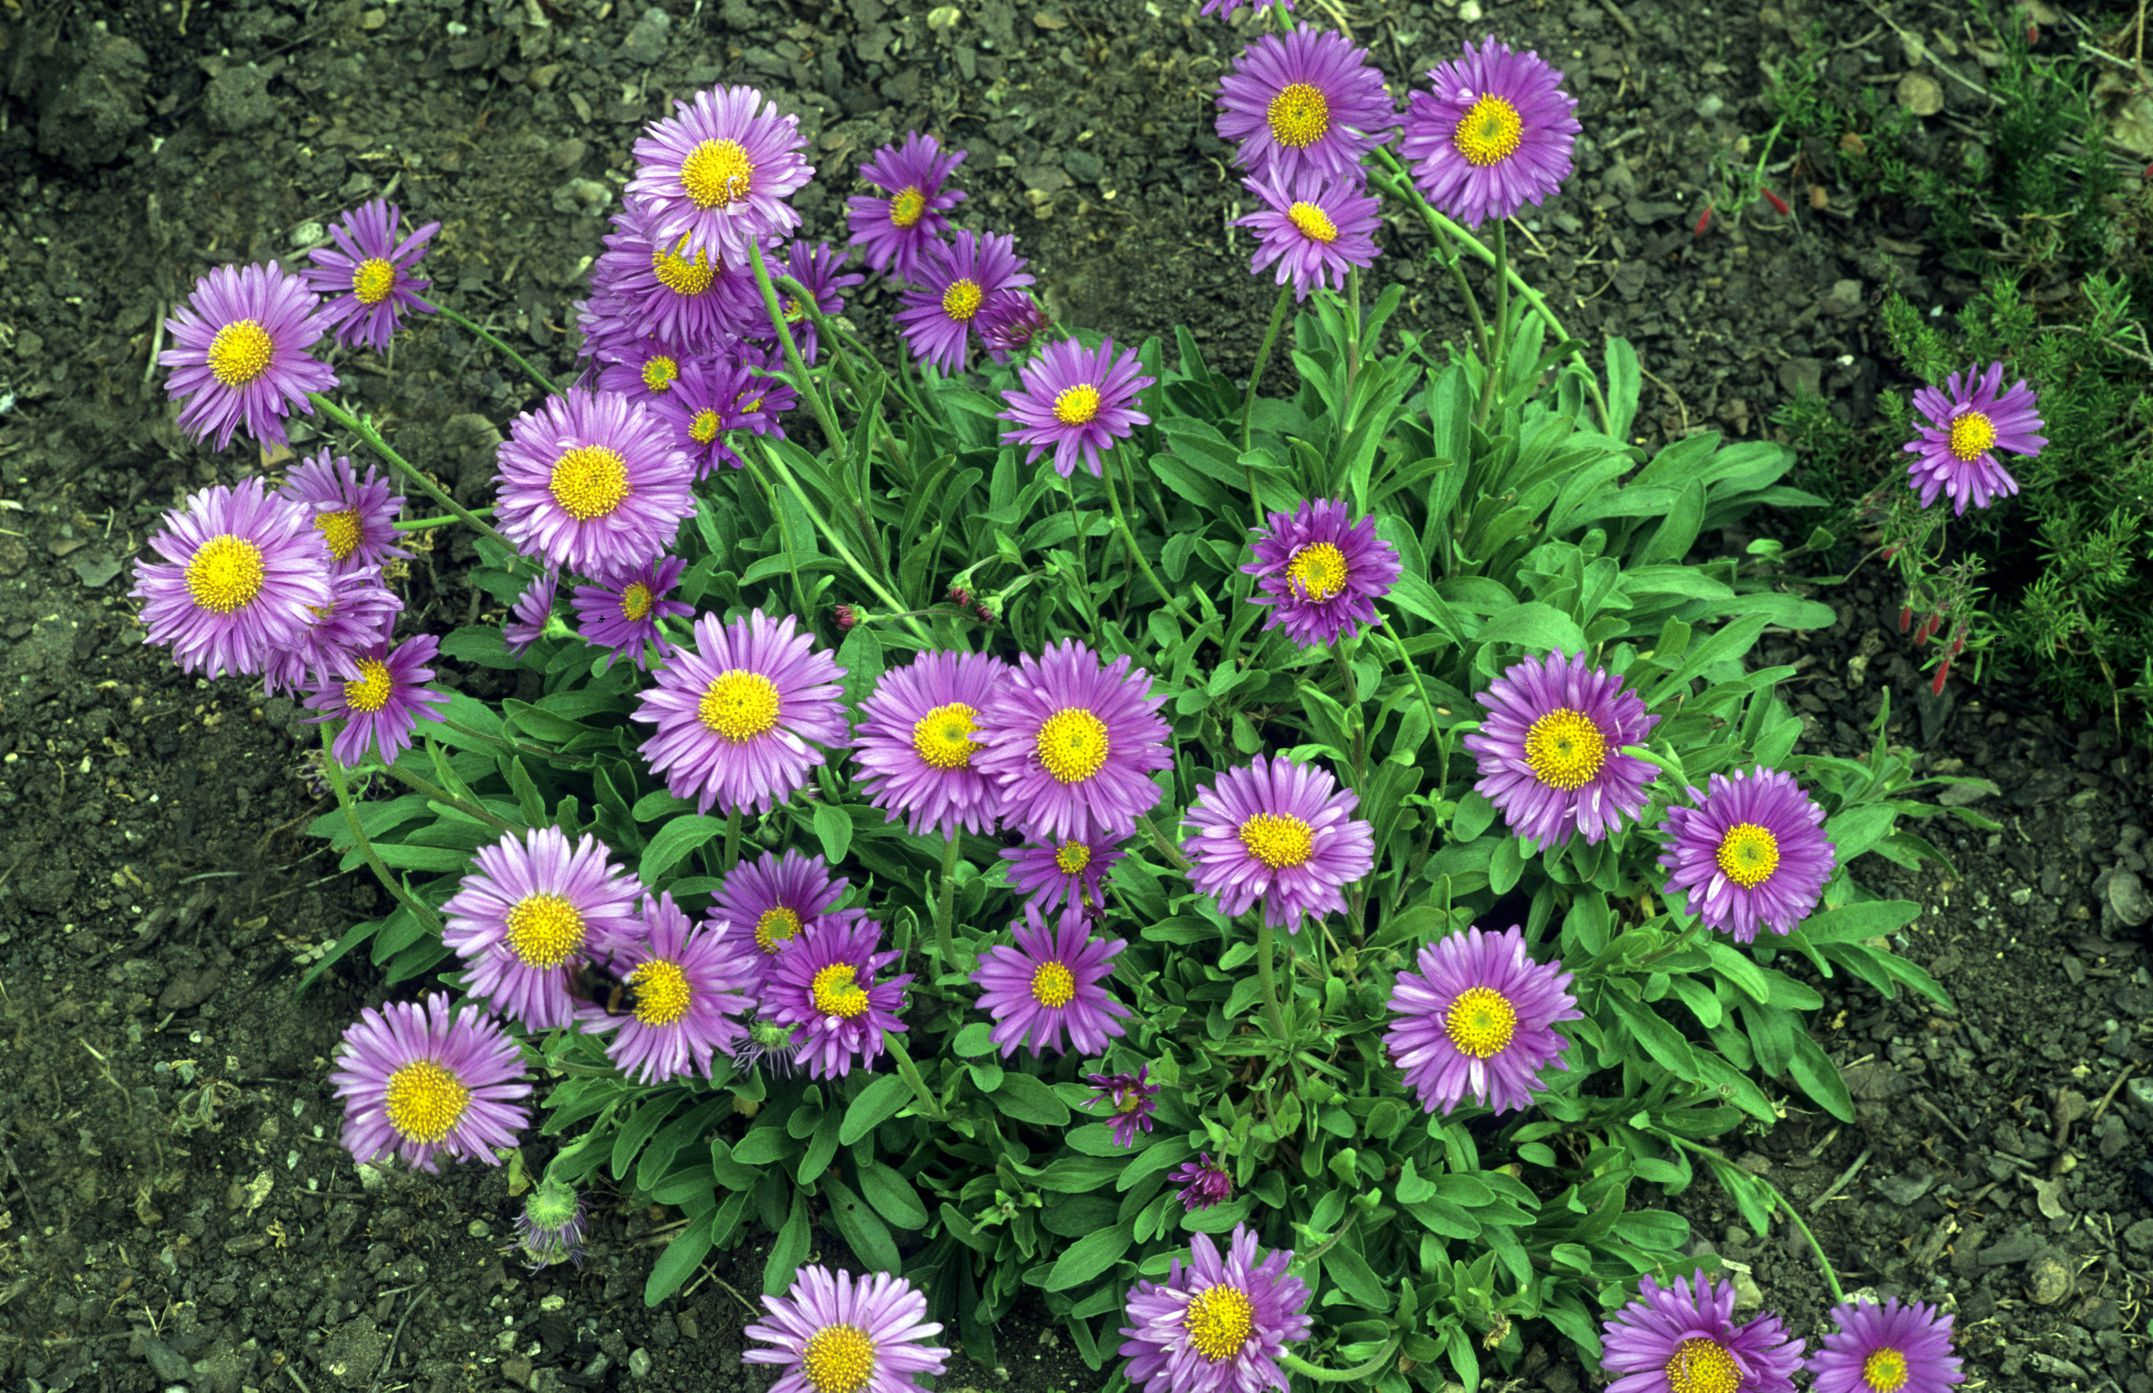 Grow perennial aster flower plants for fall blooms izmirmasajfo Choice Image